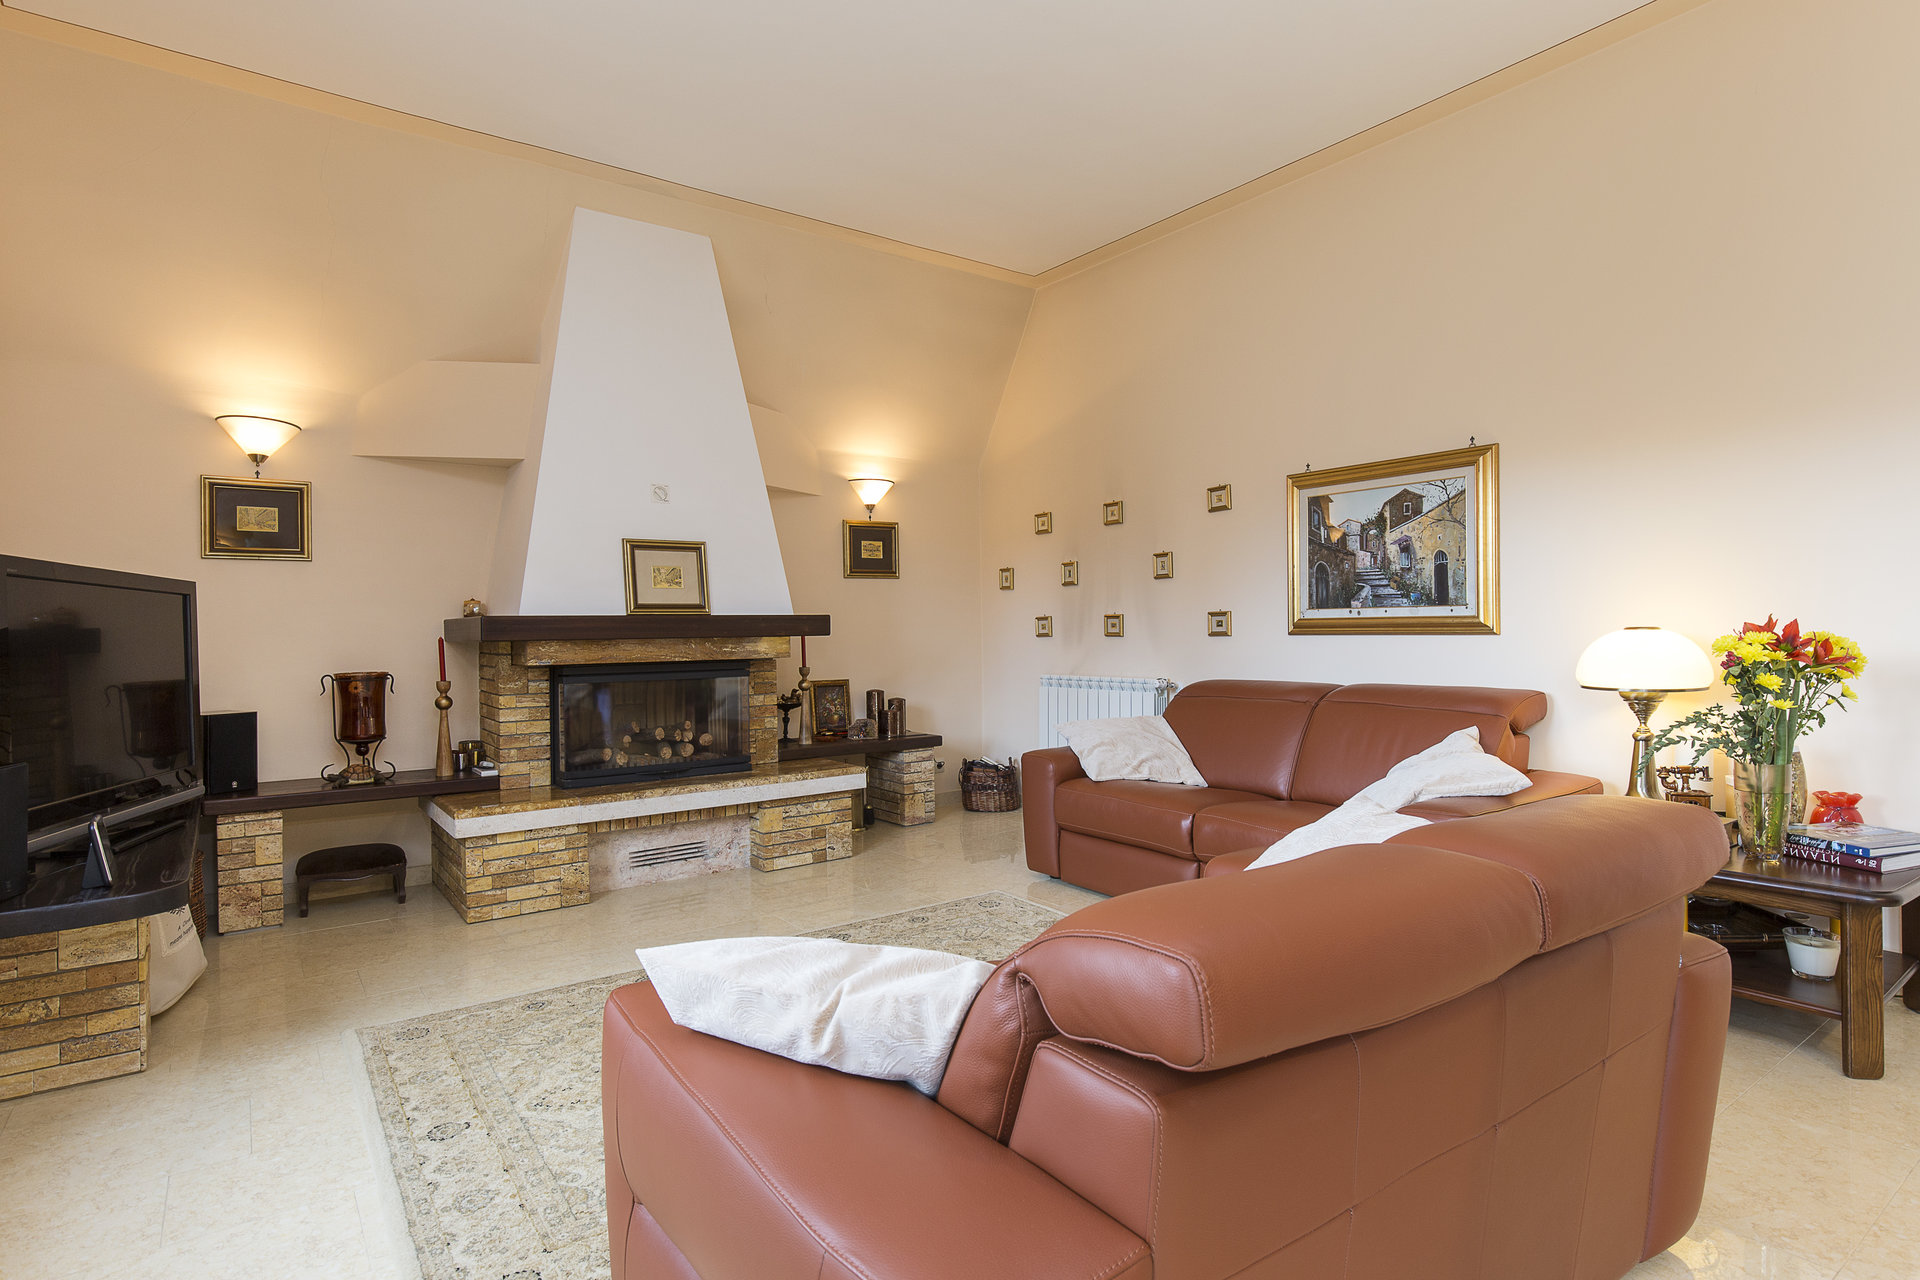 Villa for sale in Stresa with park and view on Borromean islands - living room with fireplace